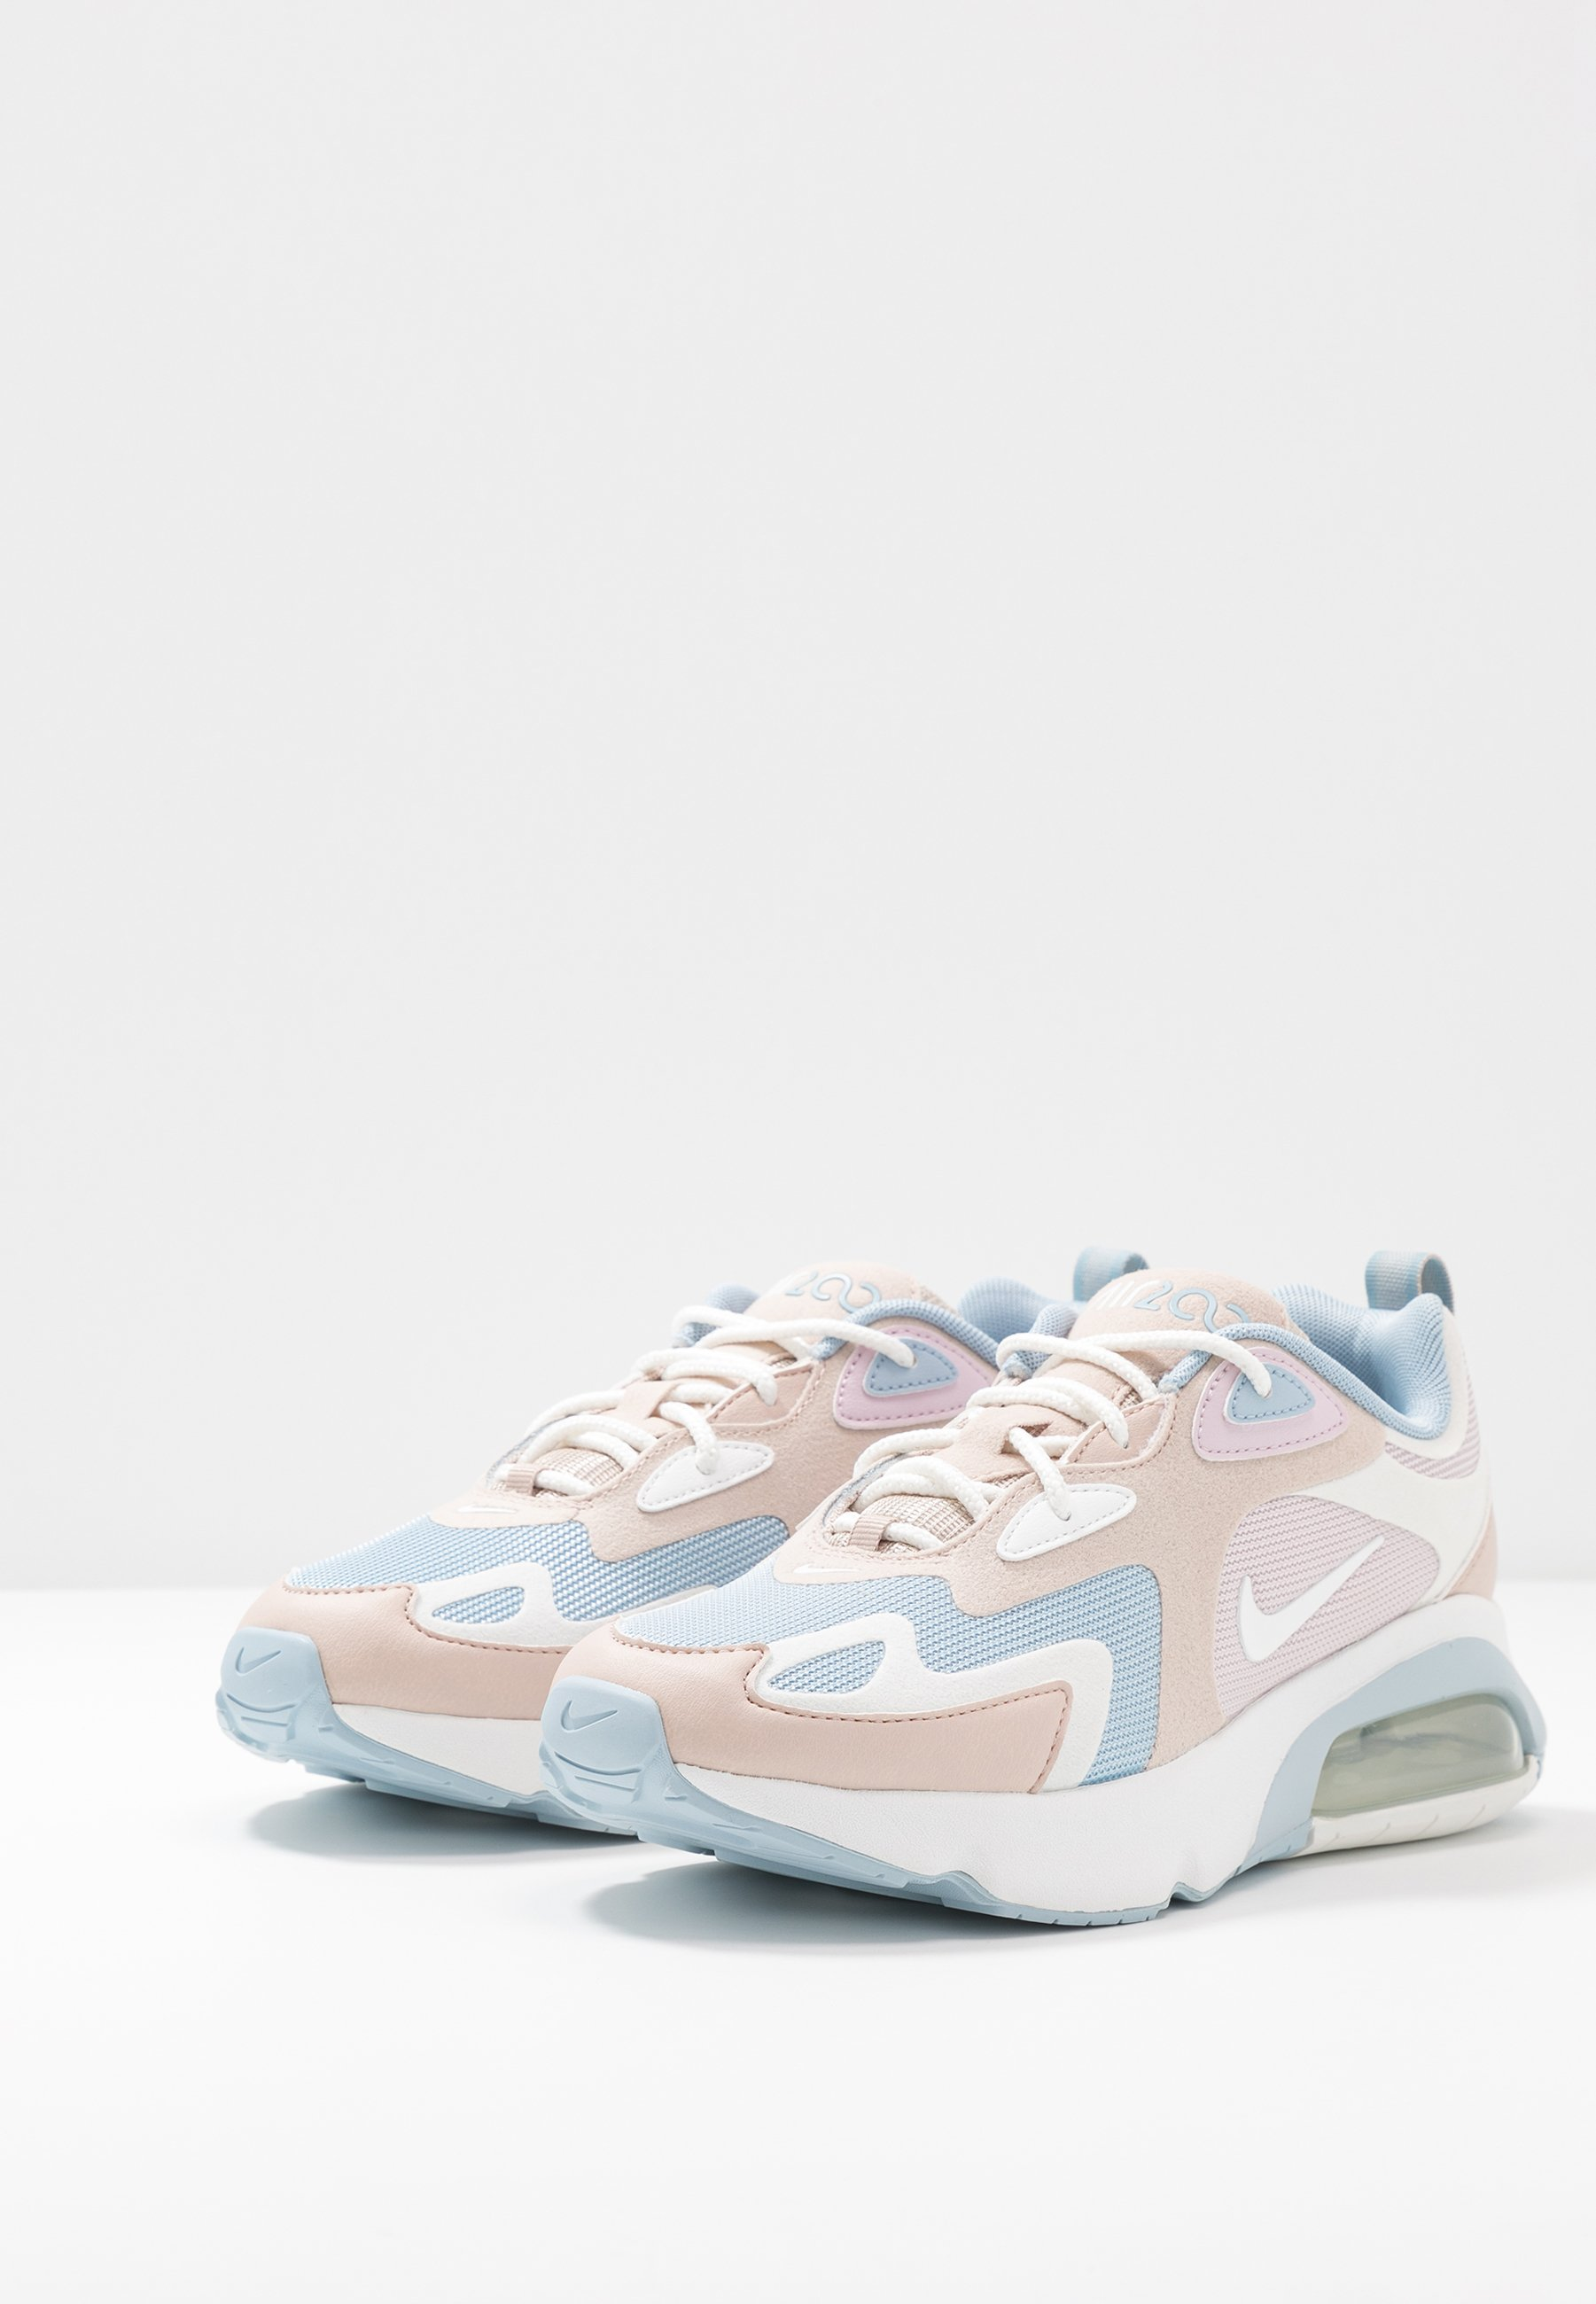 AIR MAX 200 Sneakers barely rosesummit whitefossil stonelight armory blue